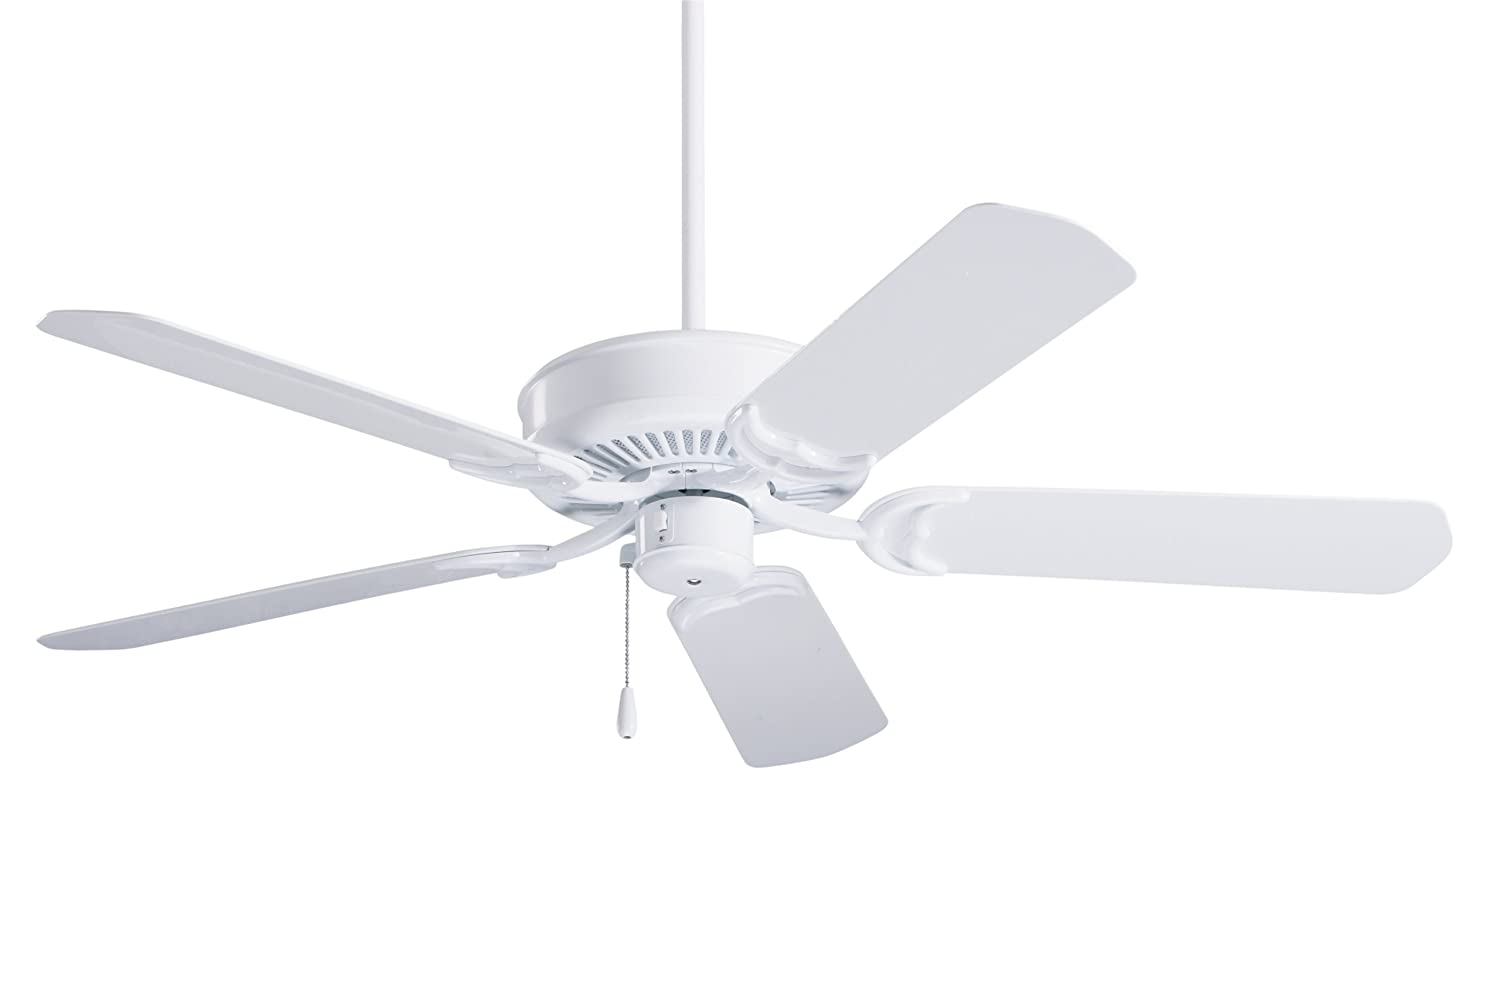 Emerson ceiling fans cf654ww sea breeze 52 inch indoor outdoor emerson ceiling fans cf654ww sea breeze 52 inch indoor outdoor ceiling fan wet rated light kit adaptable appliance white finish amazon mozeypictures Choice Image